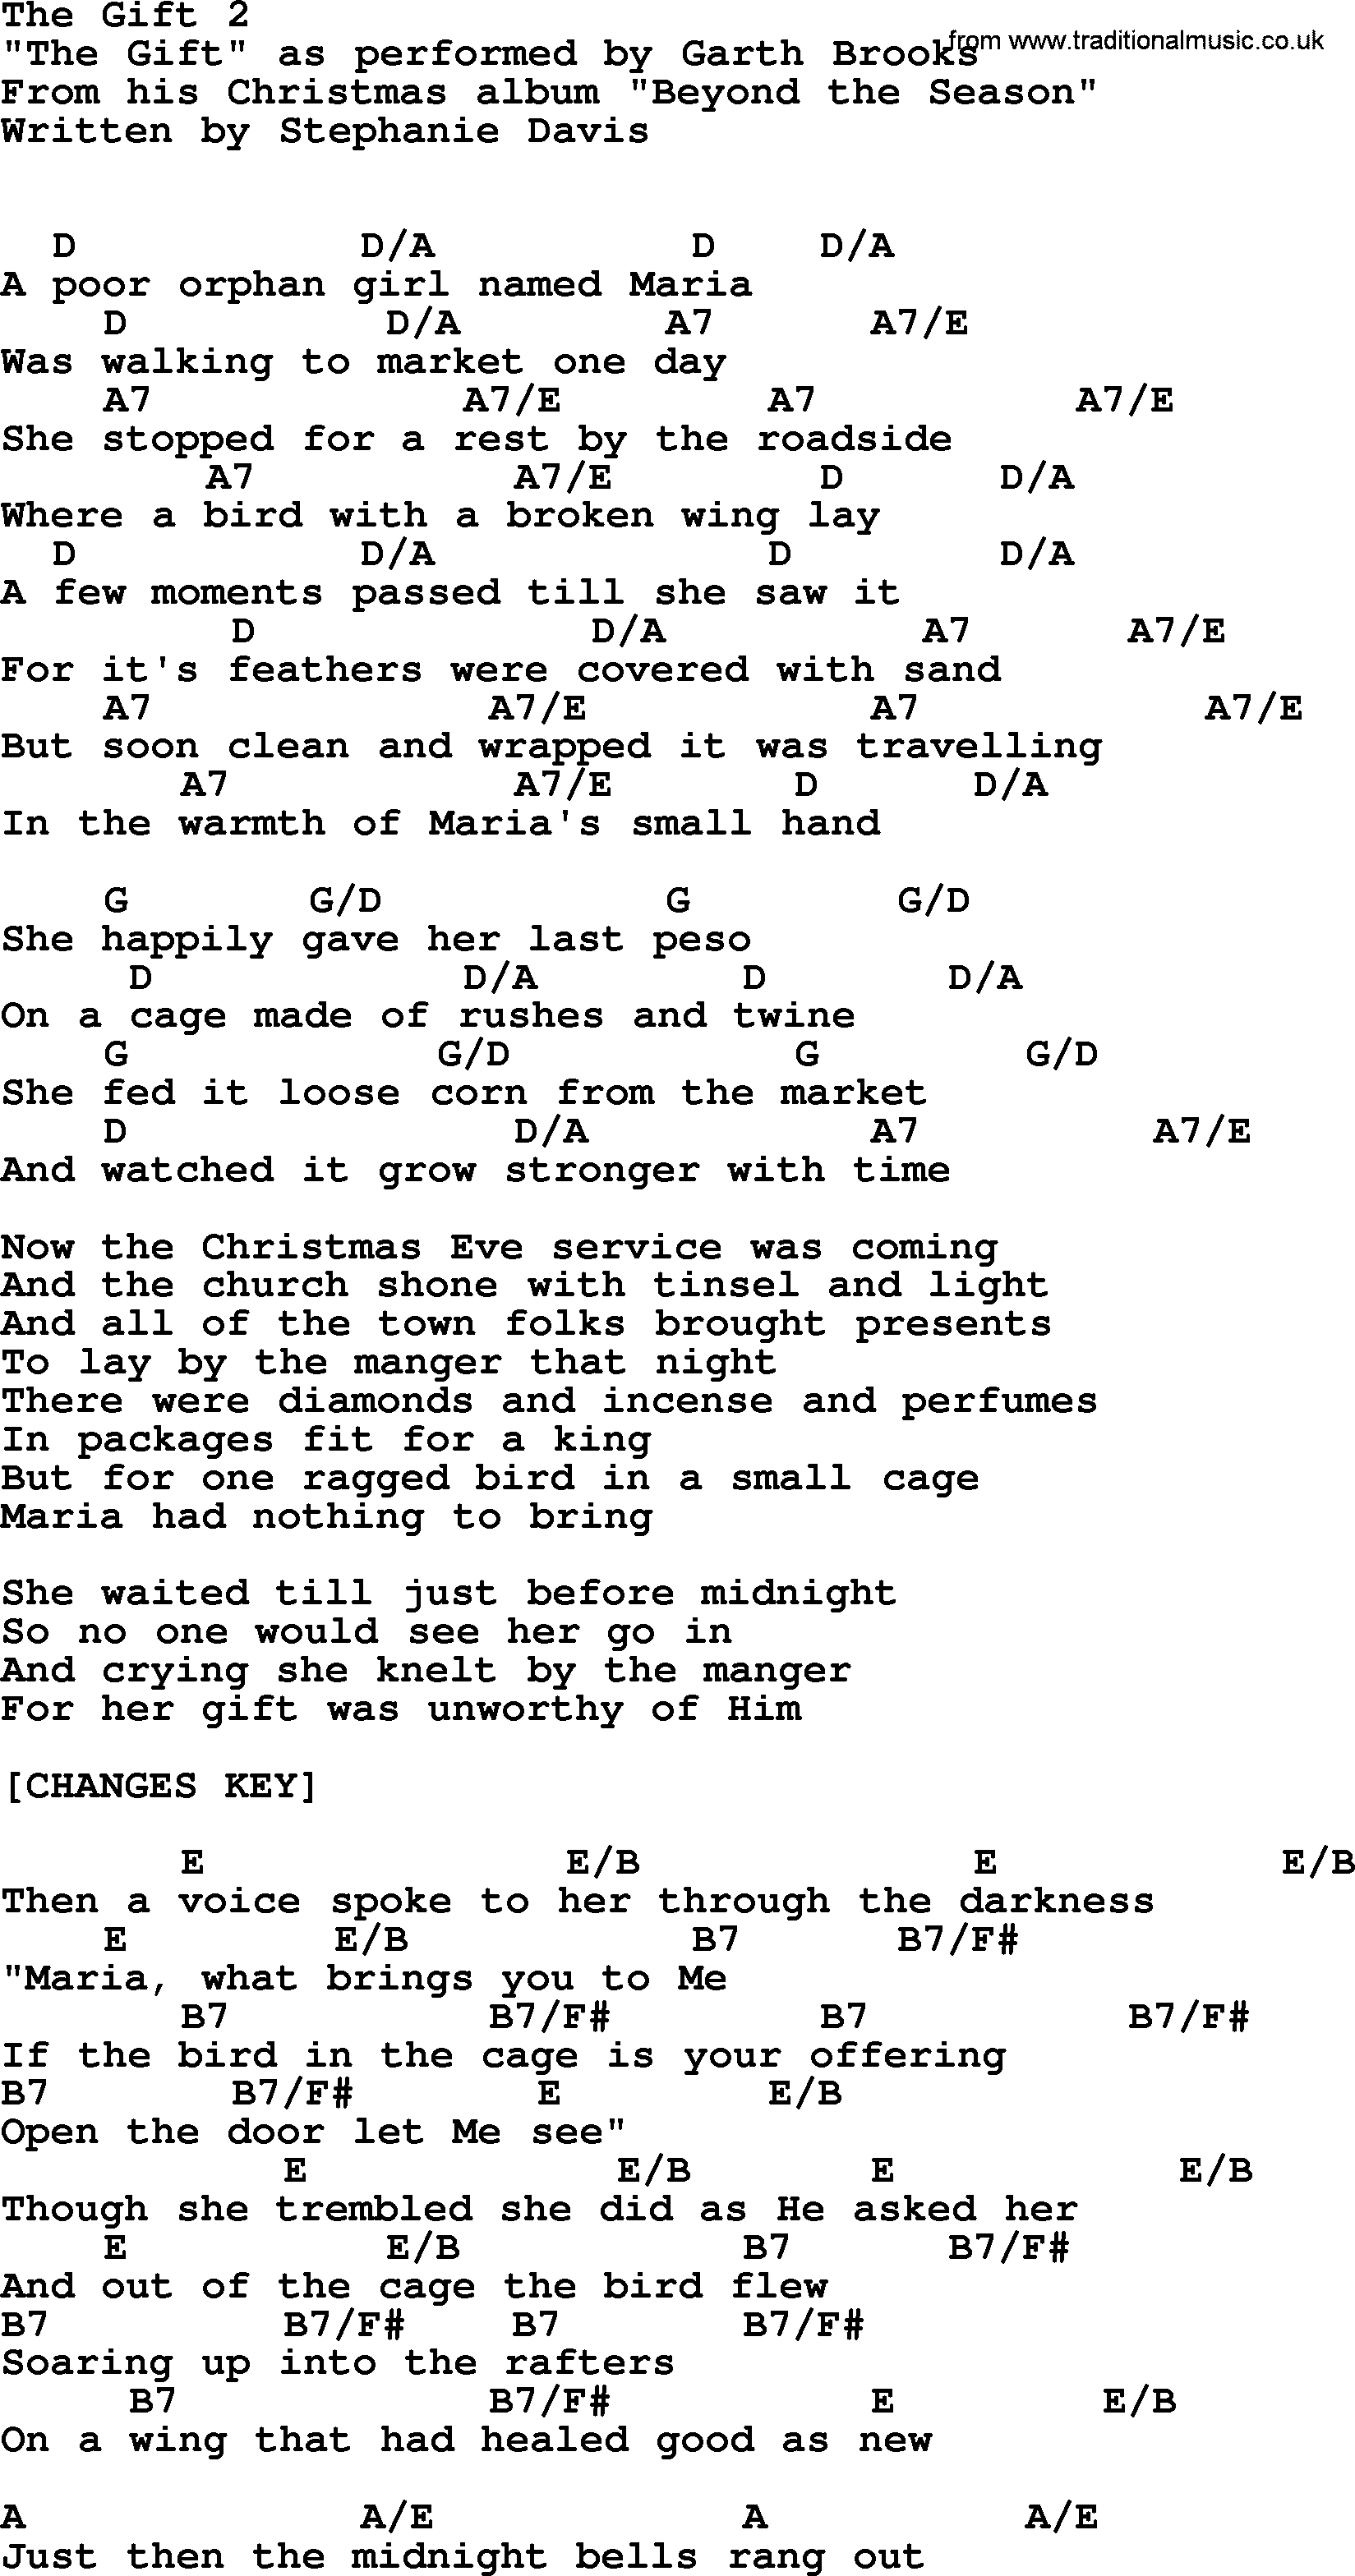 The Gift 2, by Garth Brooks - lyrics and chords